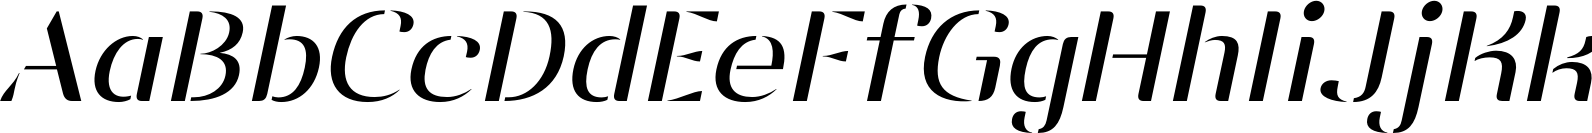 Vanage Light Italic